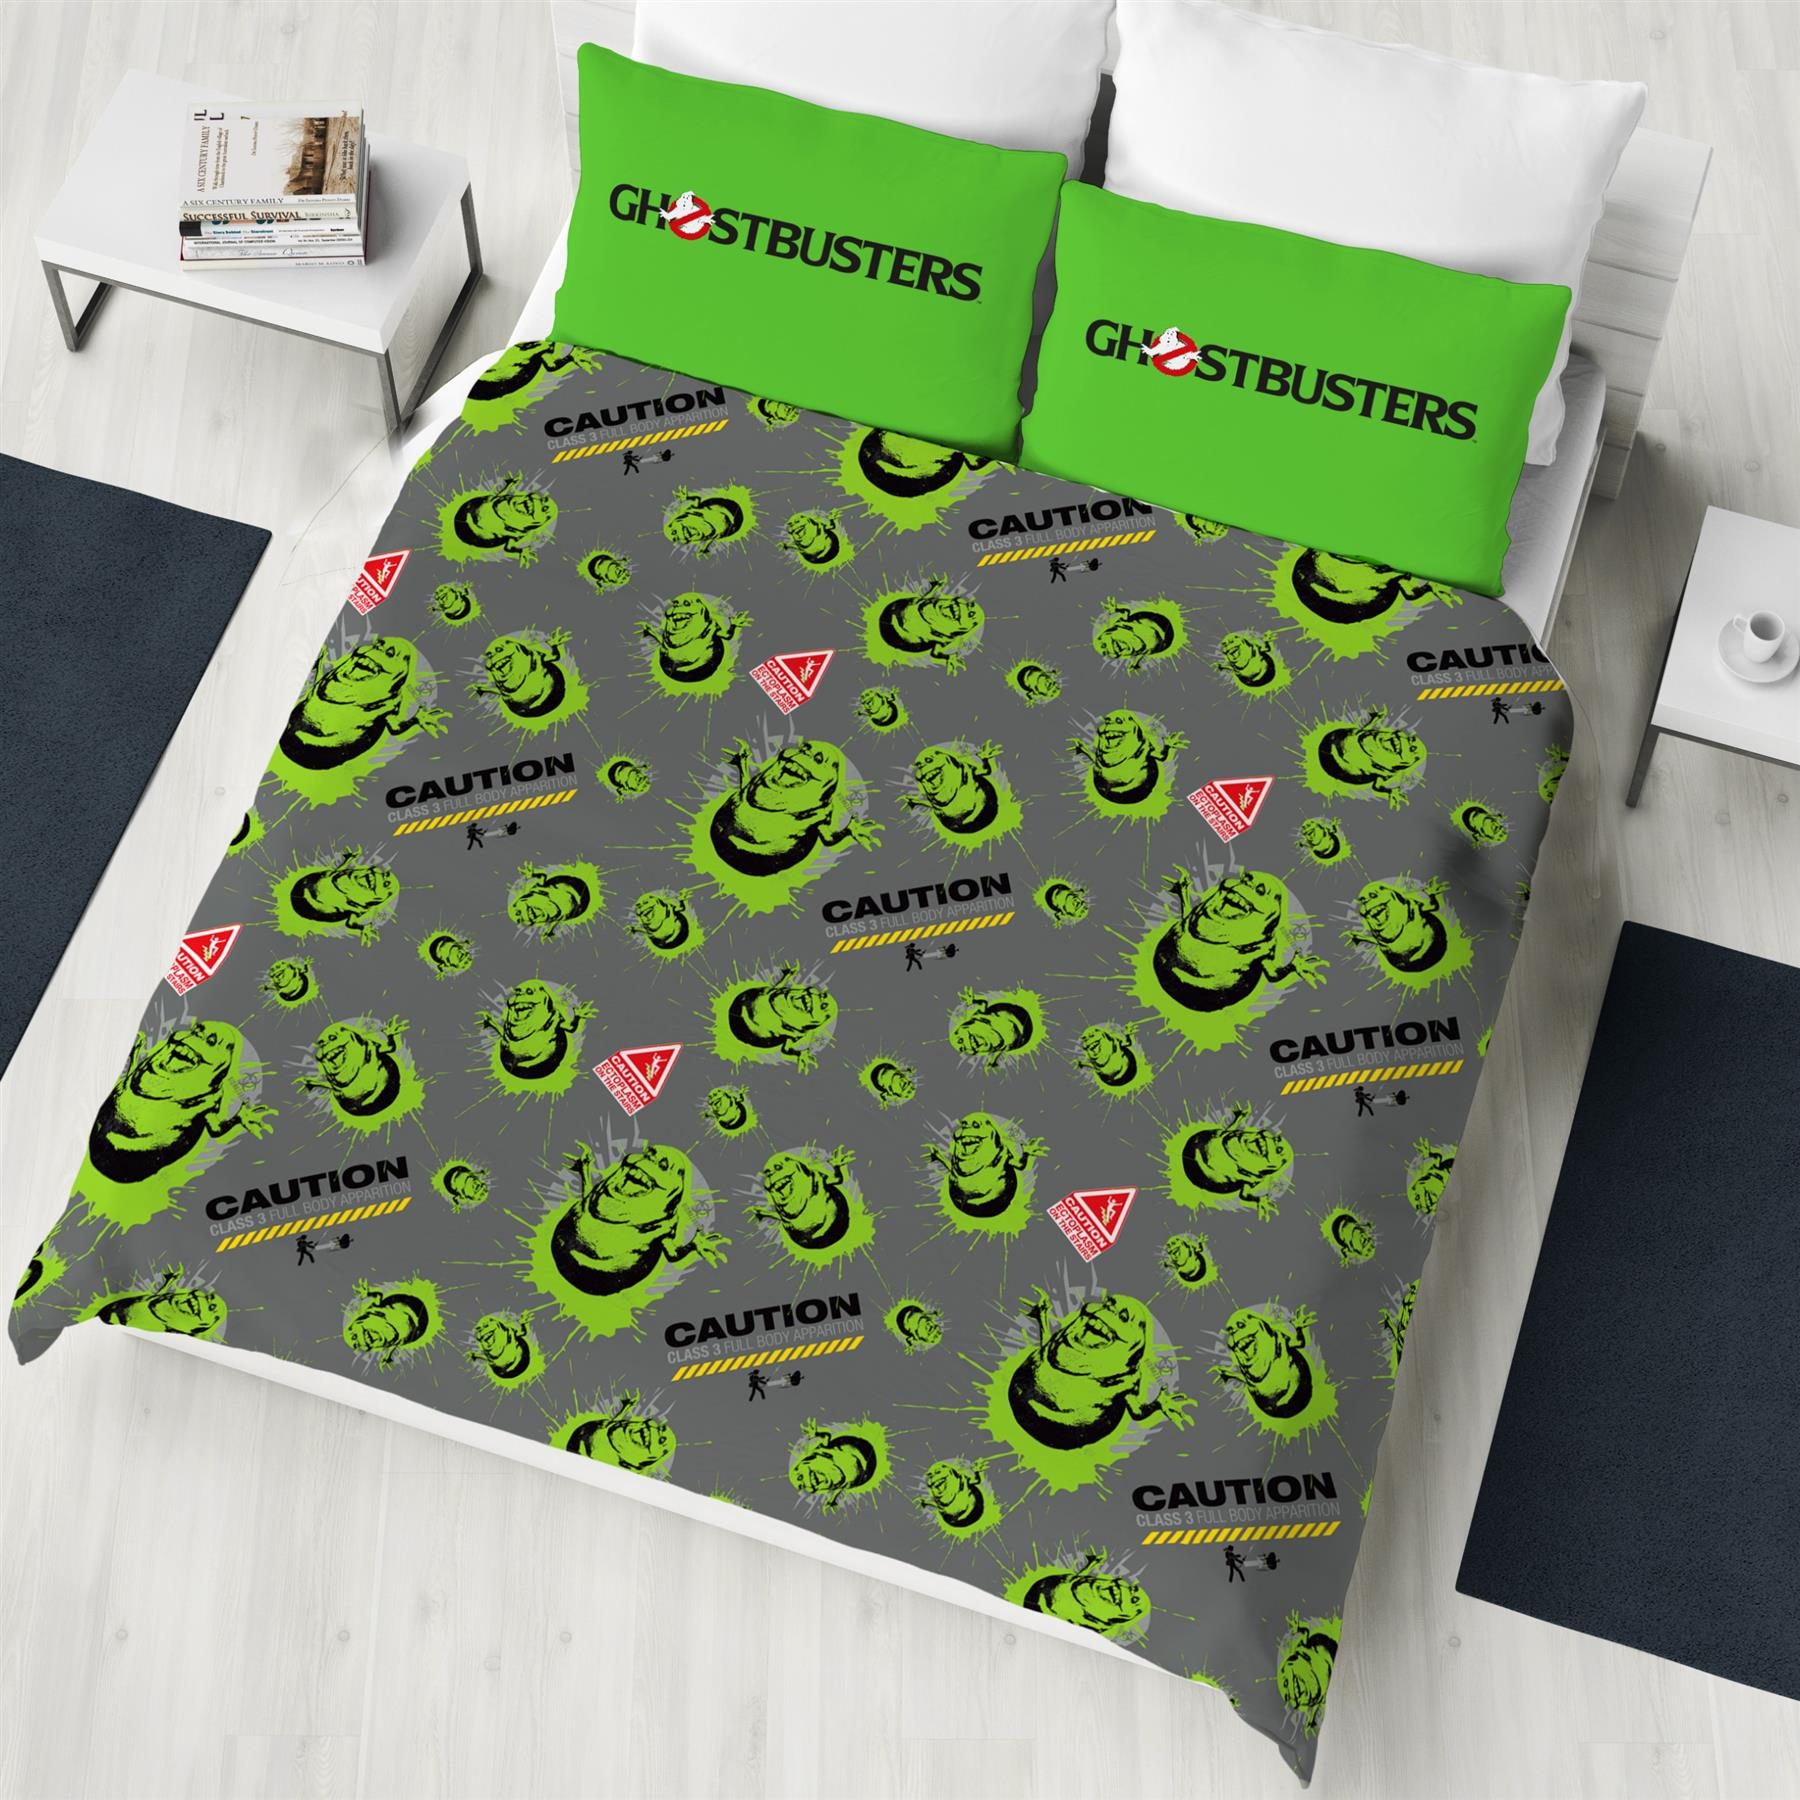 Ghostbusters-Glow-in-the-Dark-Single-Double-Duvet-Cover-Reversible-Bedding thumbnail 3